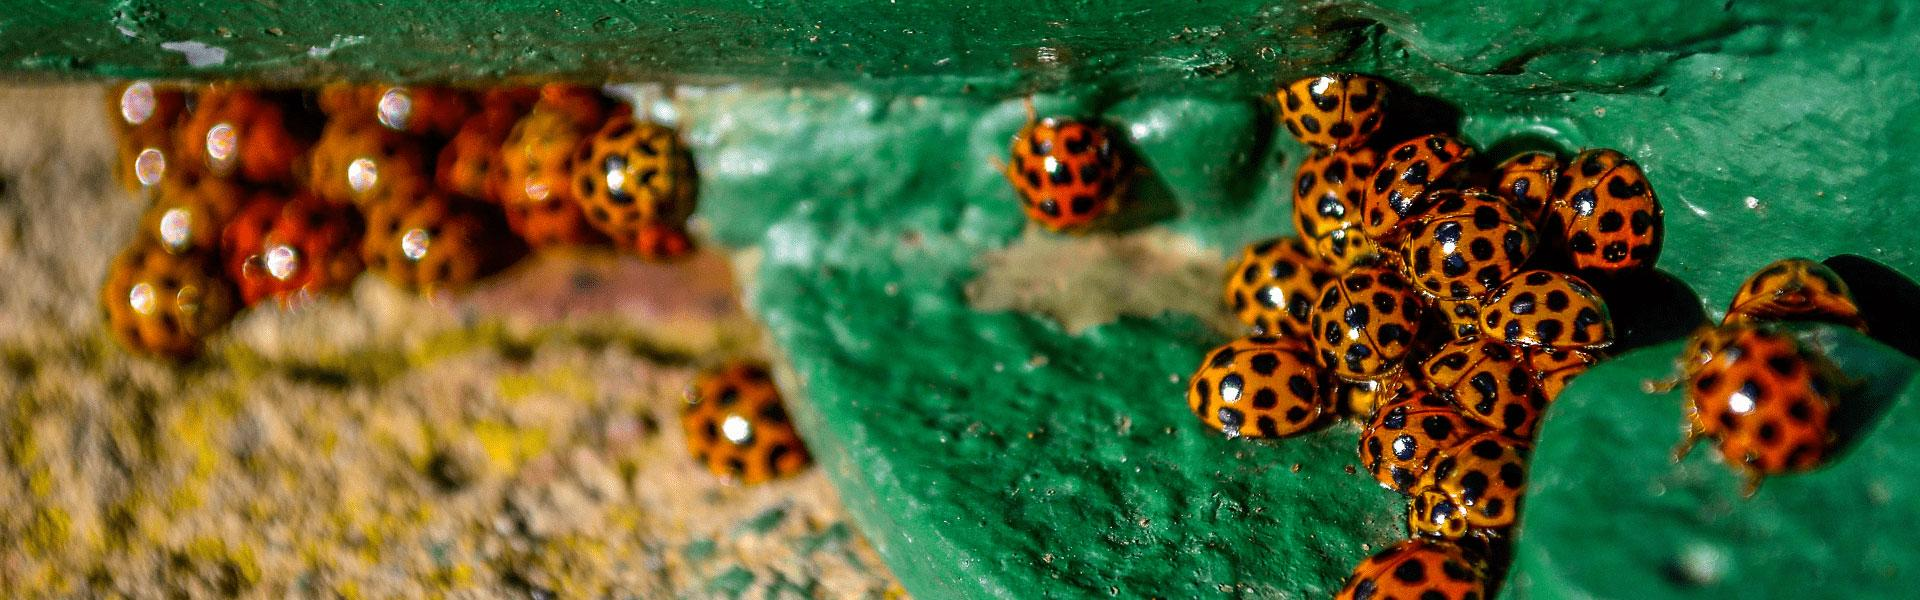 several lady bugs congregating